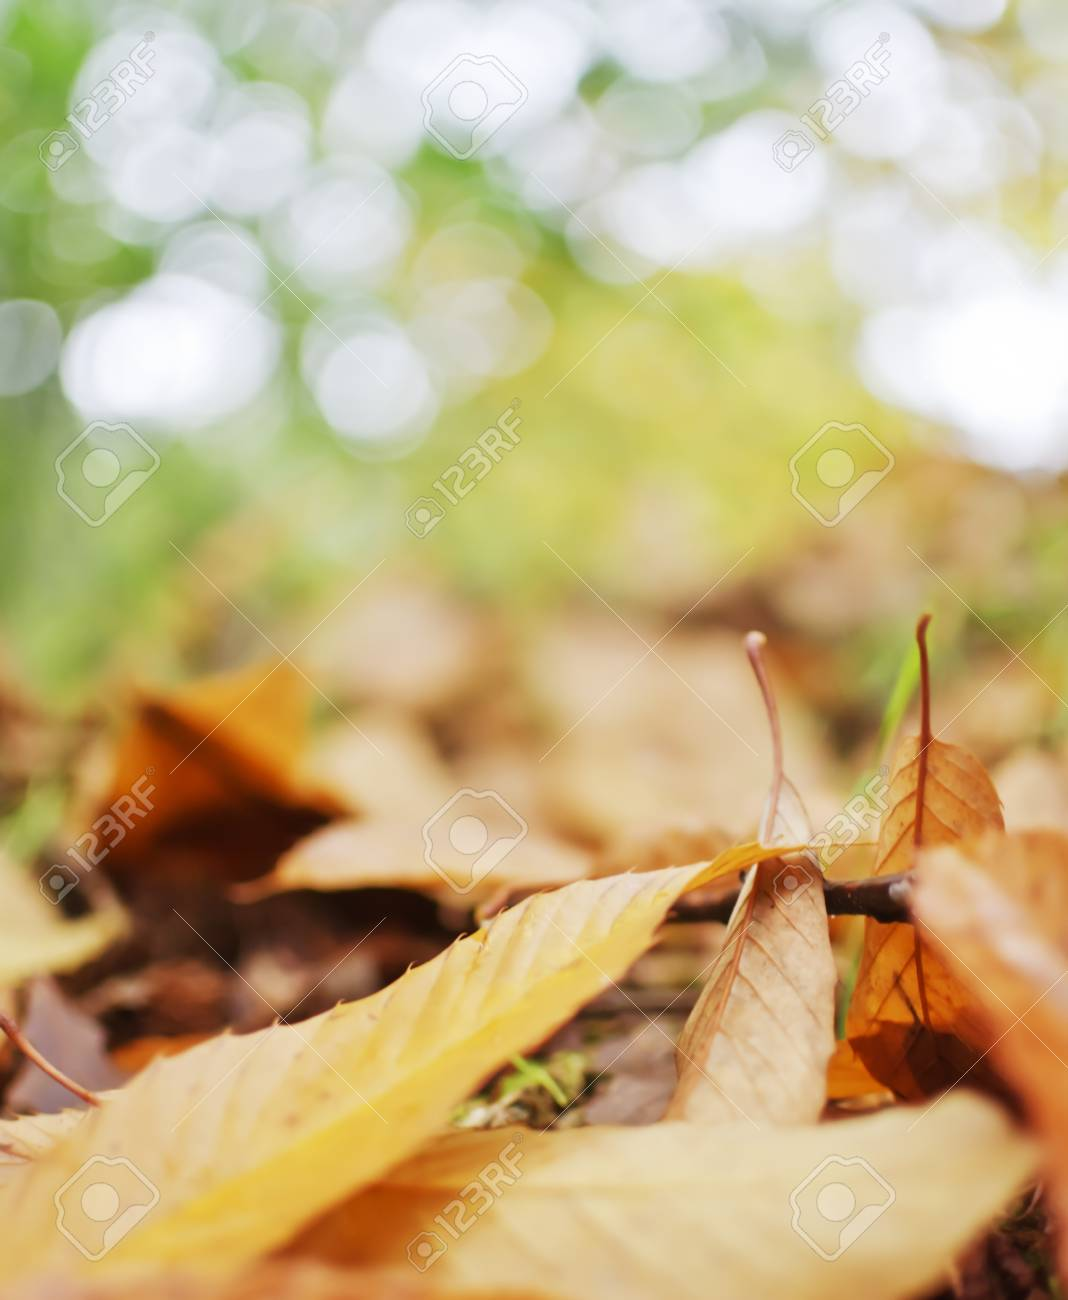 Autumn leaves in the forest. Stock Photo - 33883877